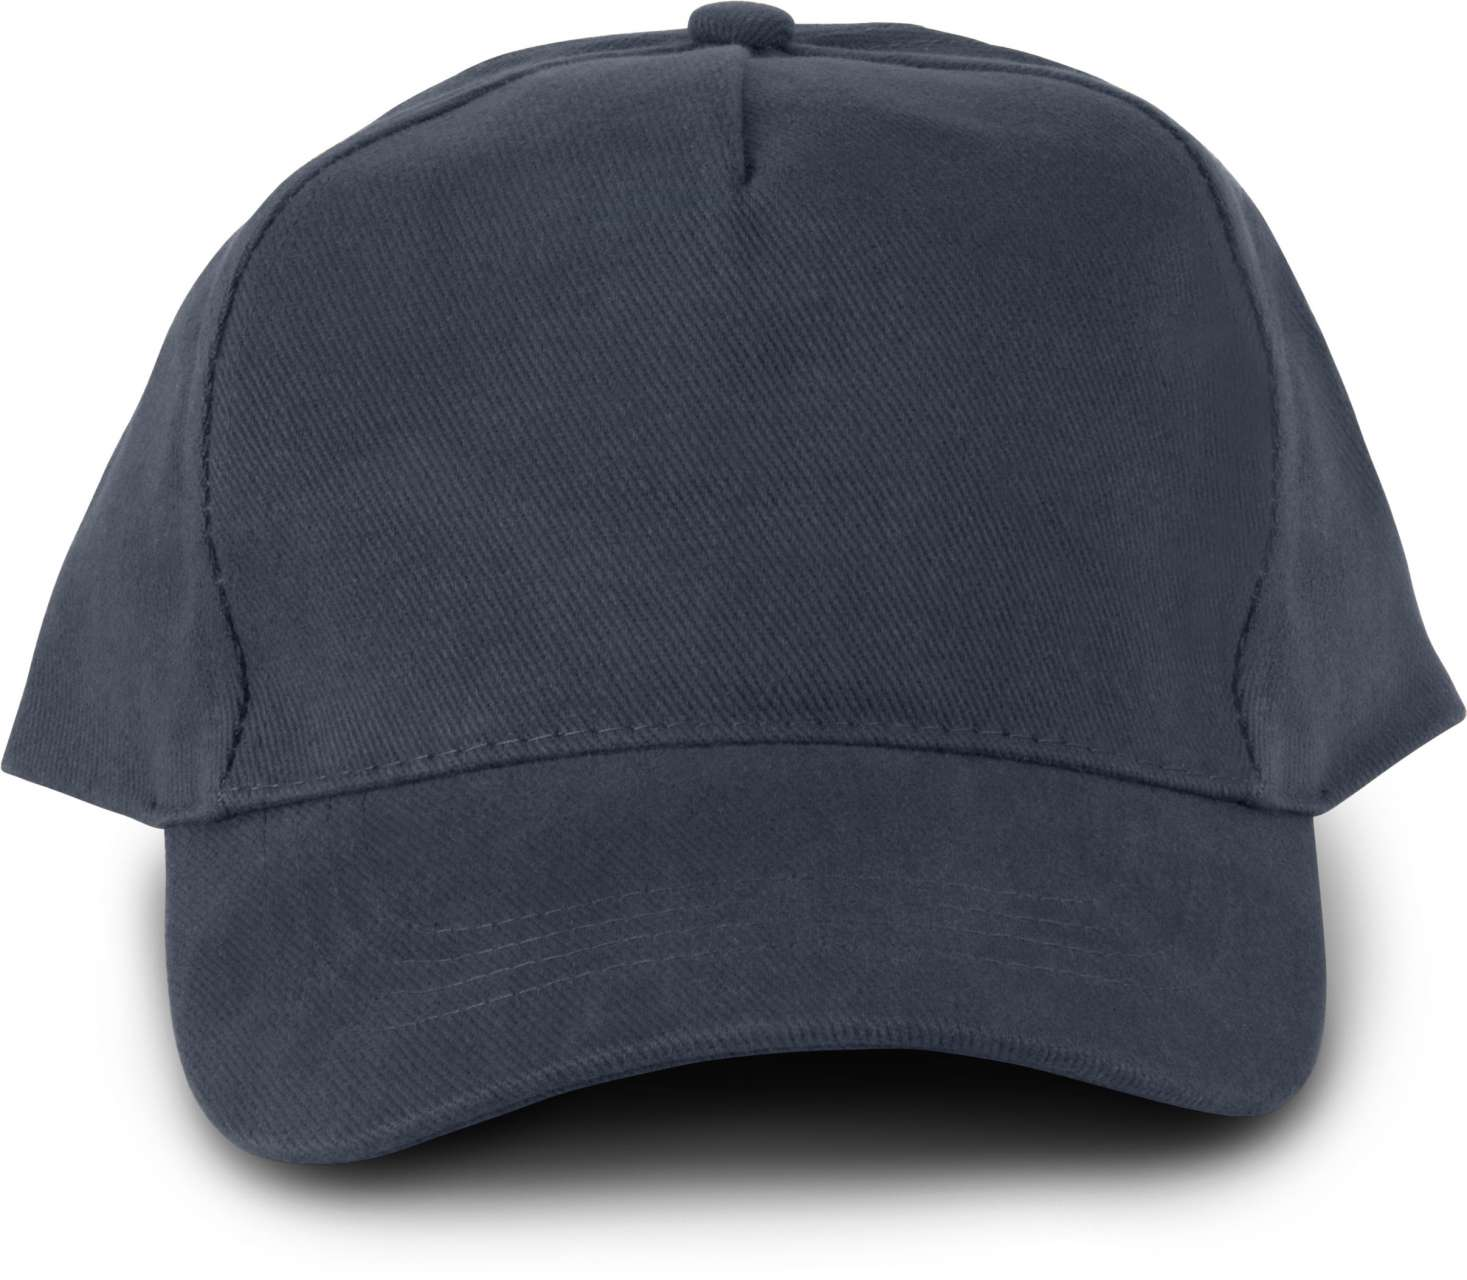 OKEOTEX CERTIFIED 5 PANEL CAP